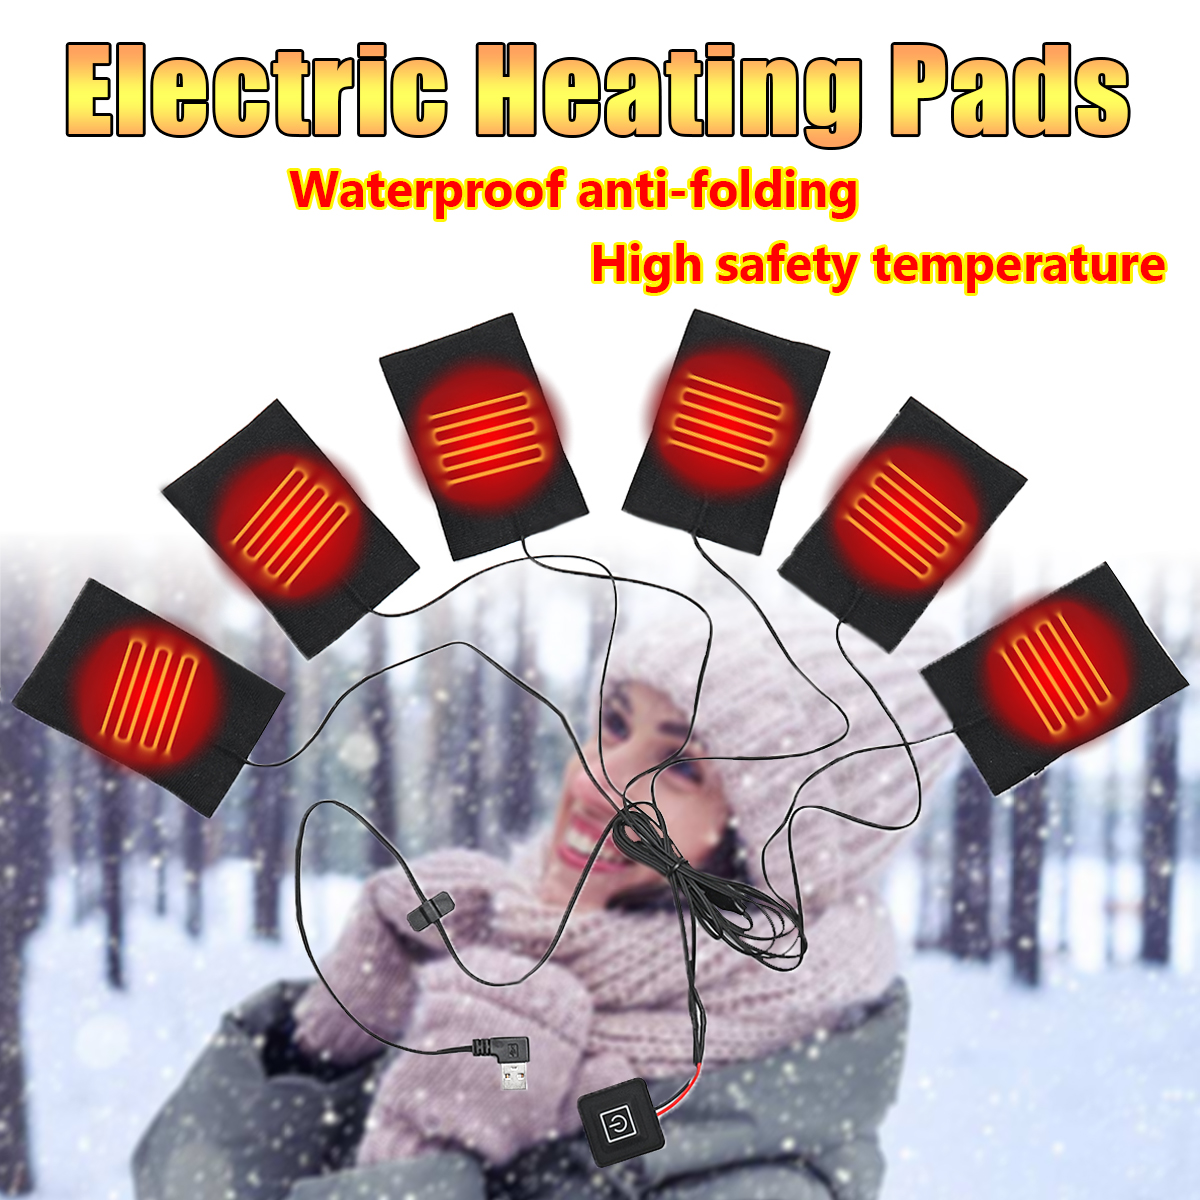 6 in 1 USB Electric Heating Pads Thermal Clothes Heated Mobile Warming Gear